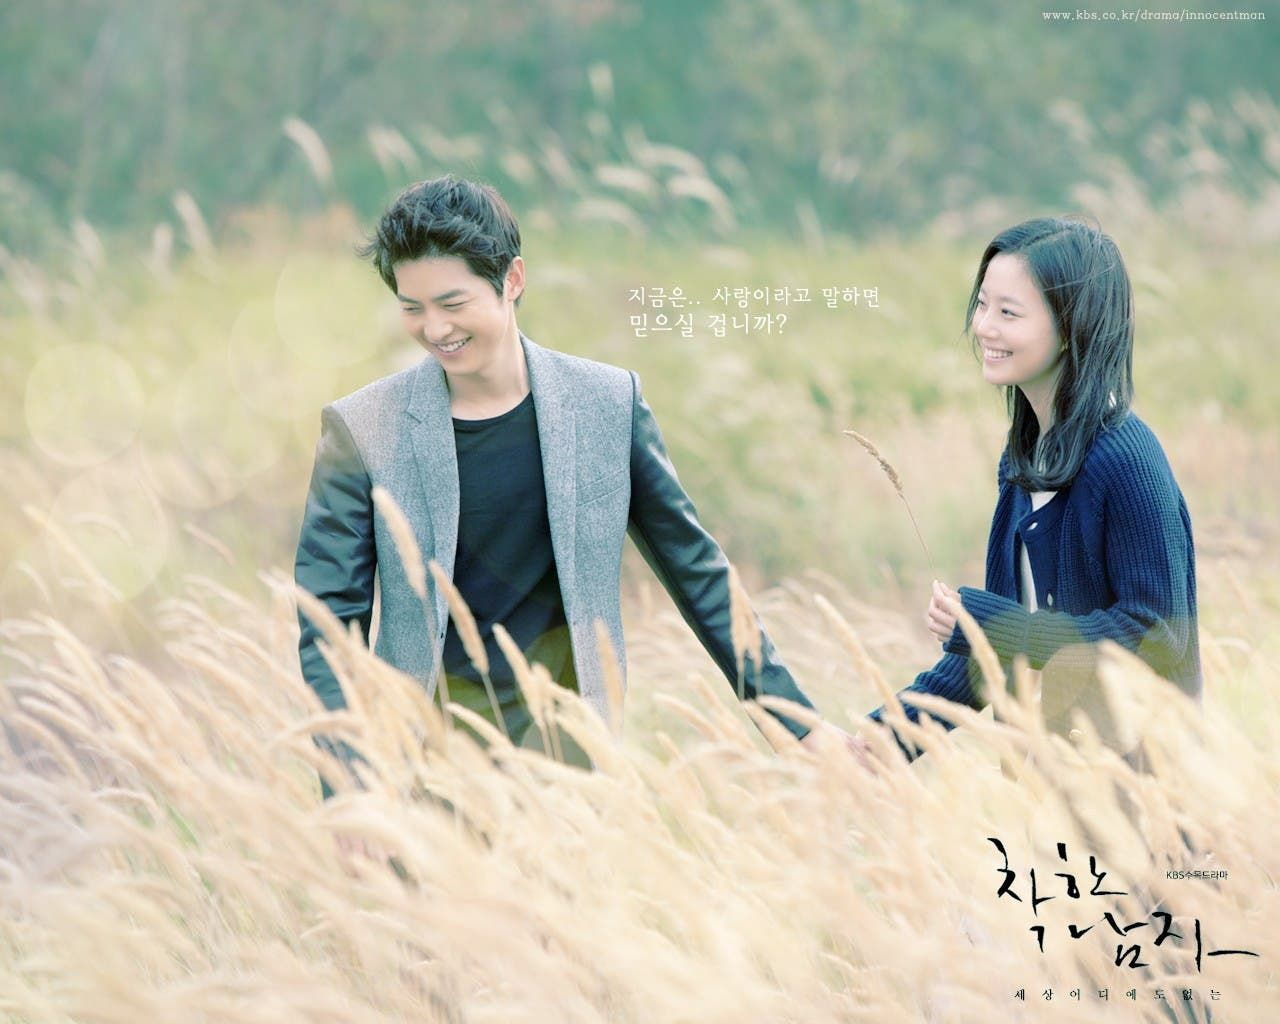 은마루는 특별했다 by ㅇㅇ Song joong ki, Joong ki, Moon chae won